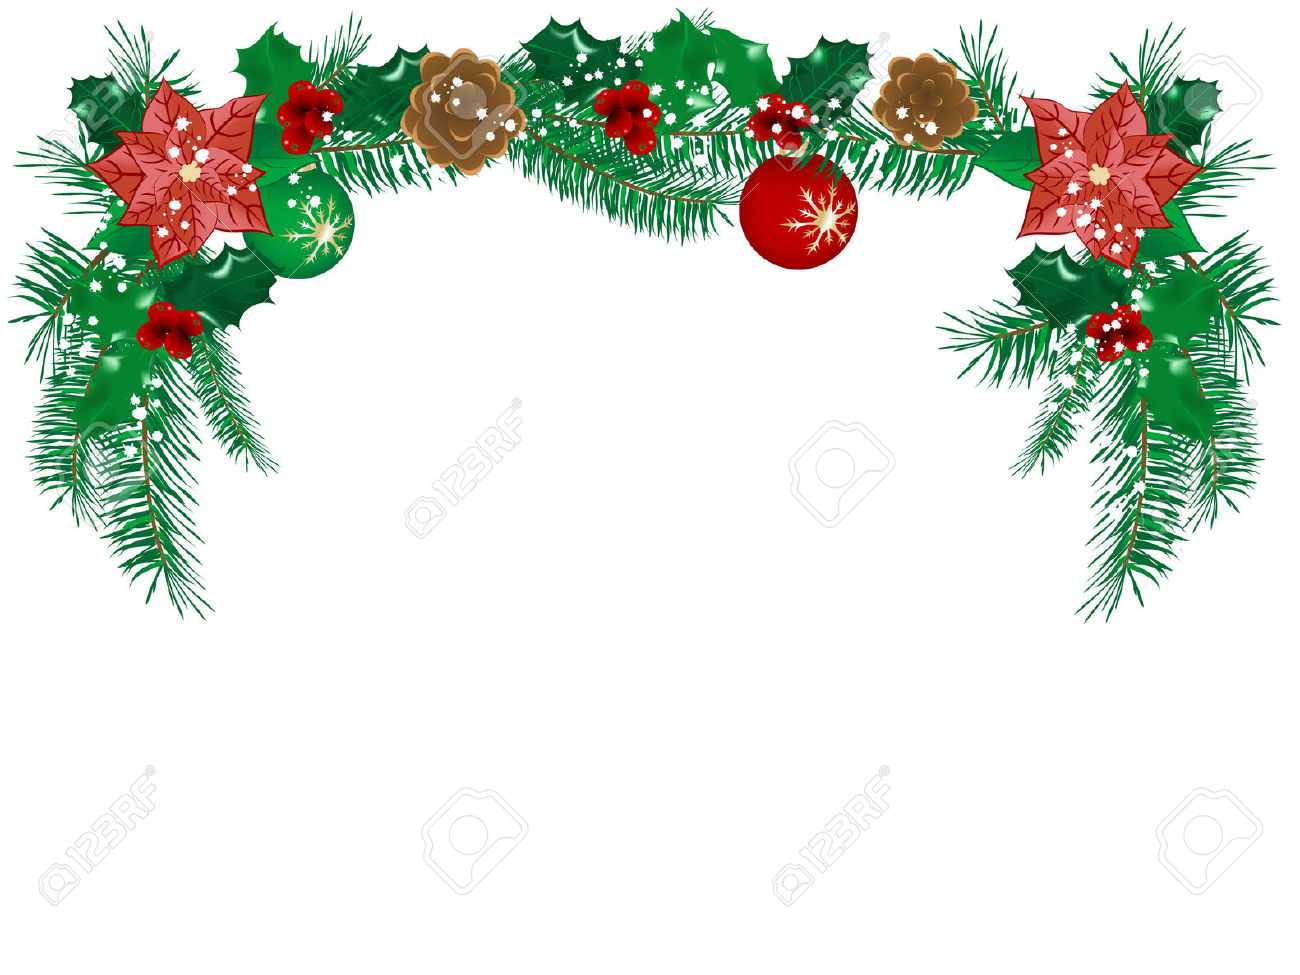 Free clipart christmas flowers royalty free Christmas Flower Garland - Vector Illustration Royalty Free ... royalty free